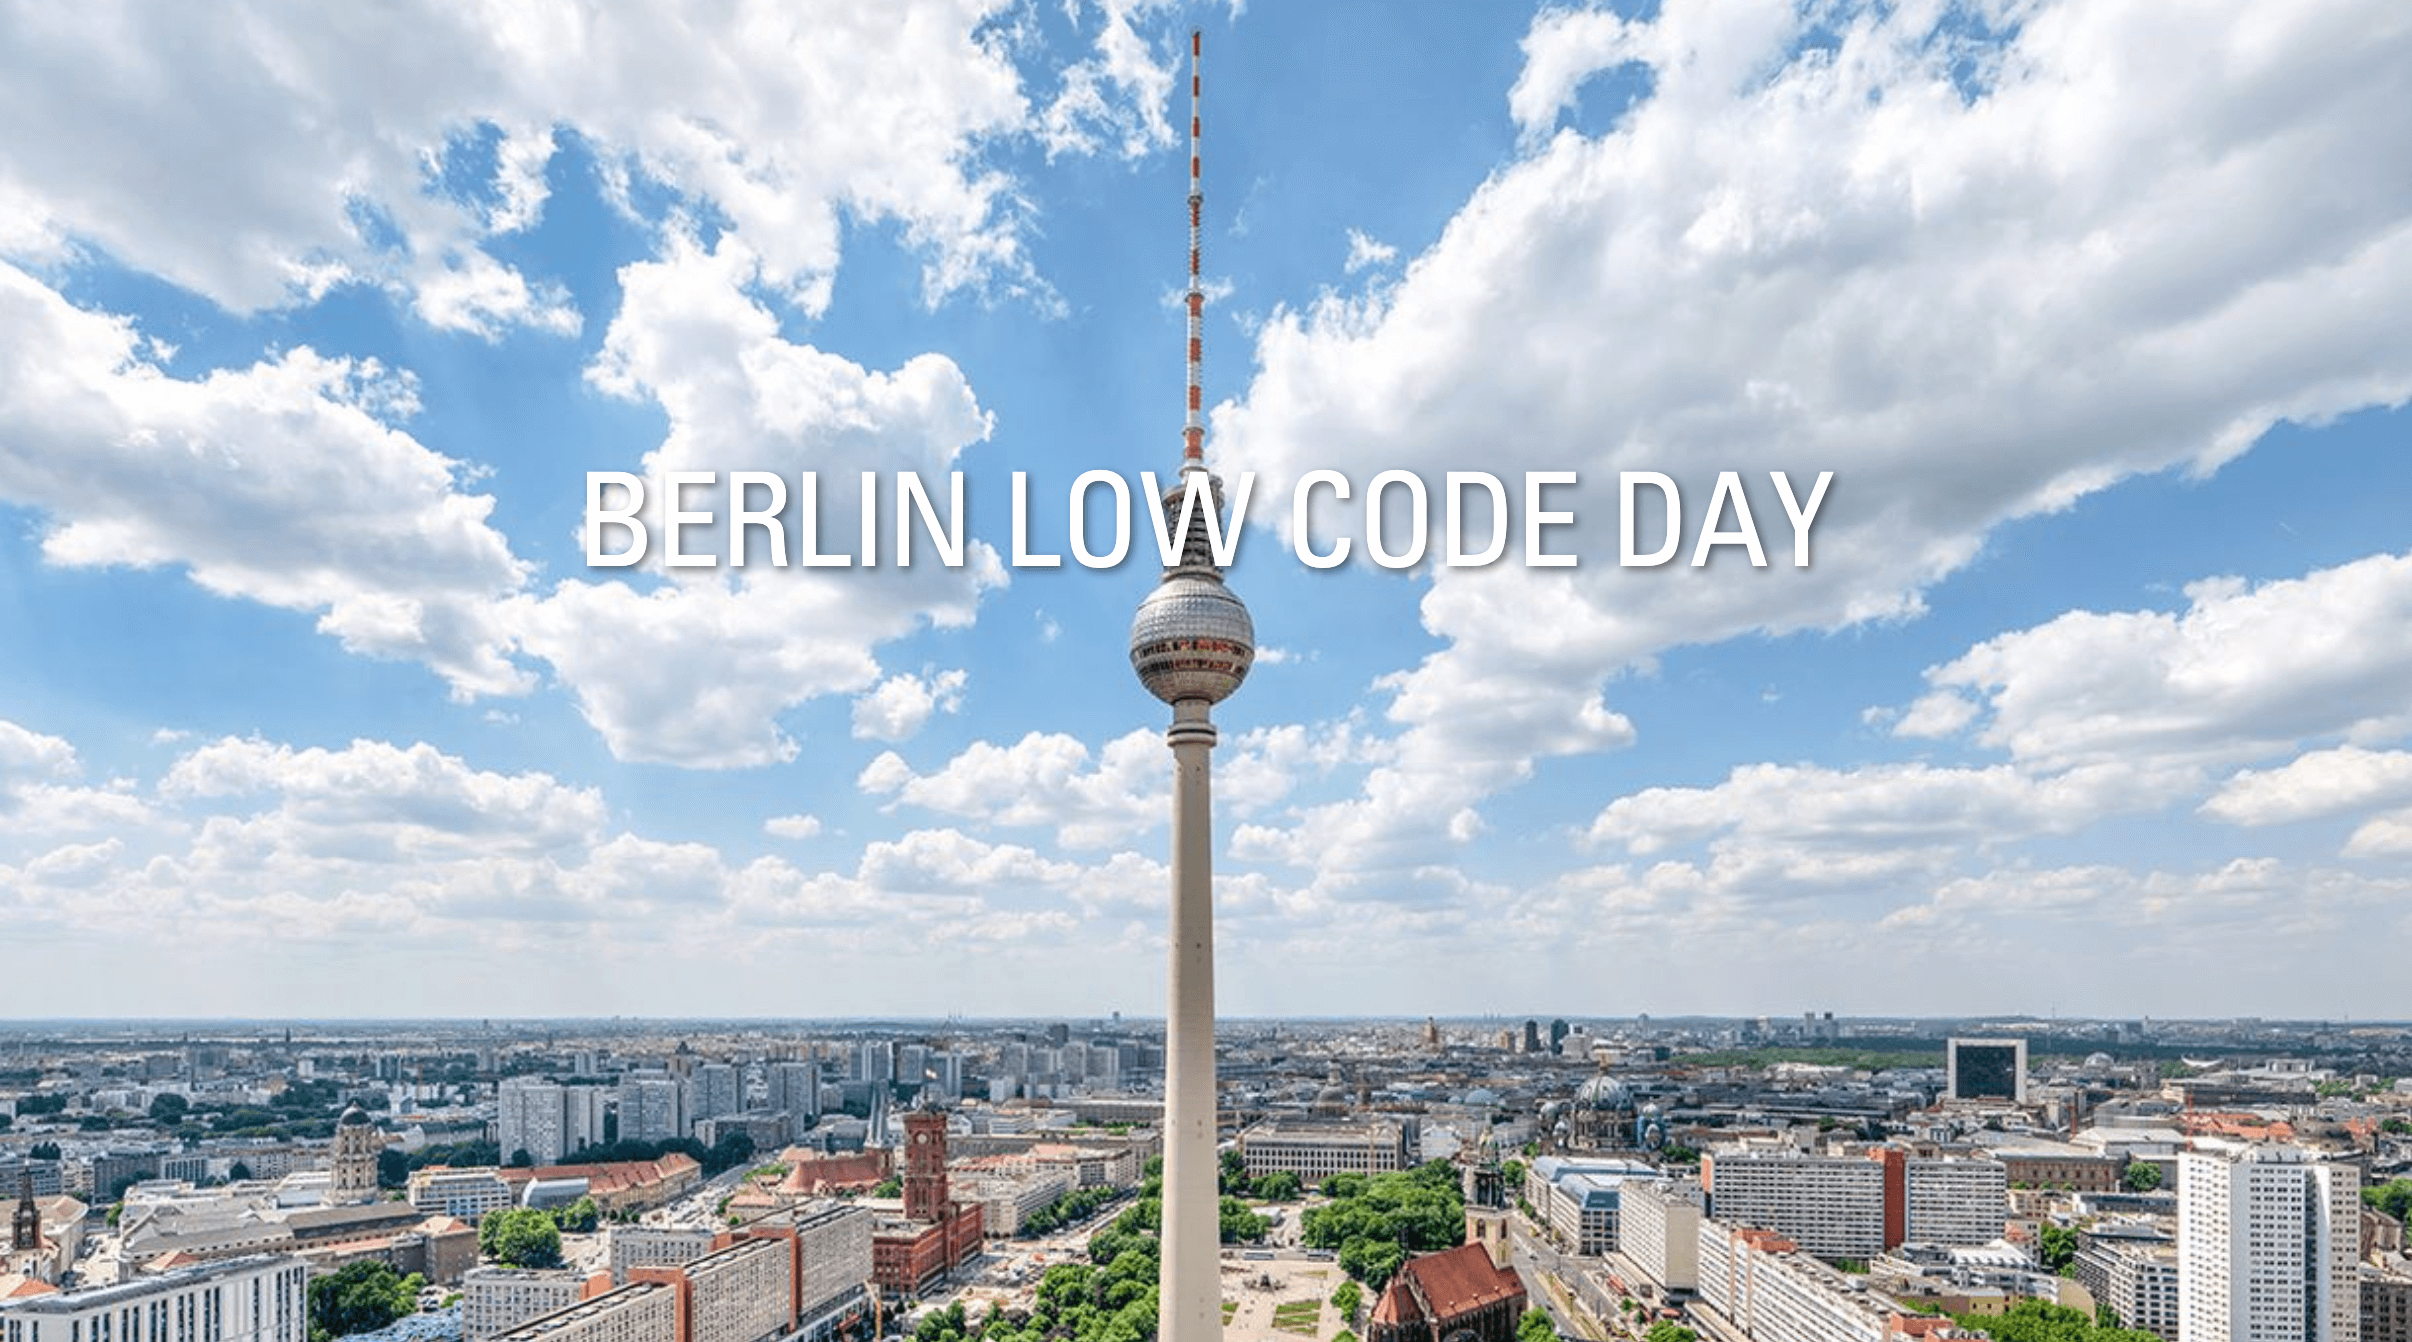 Low Code Day Berlin 2019